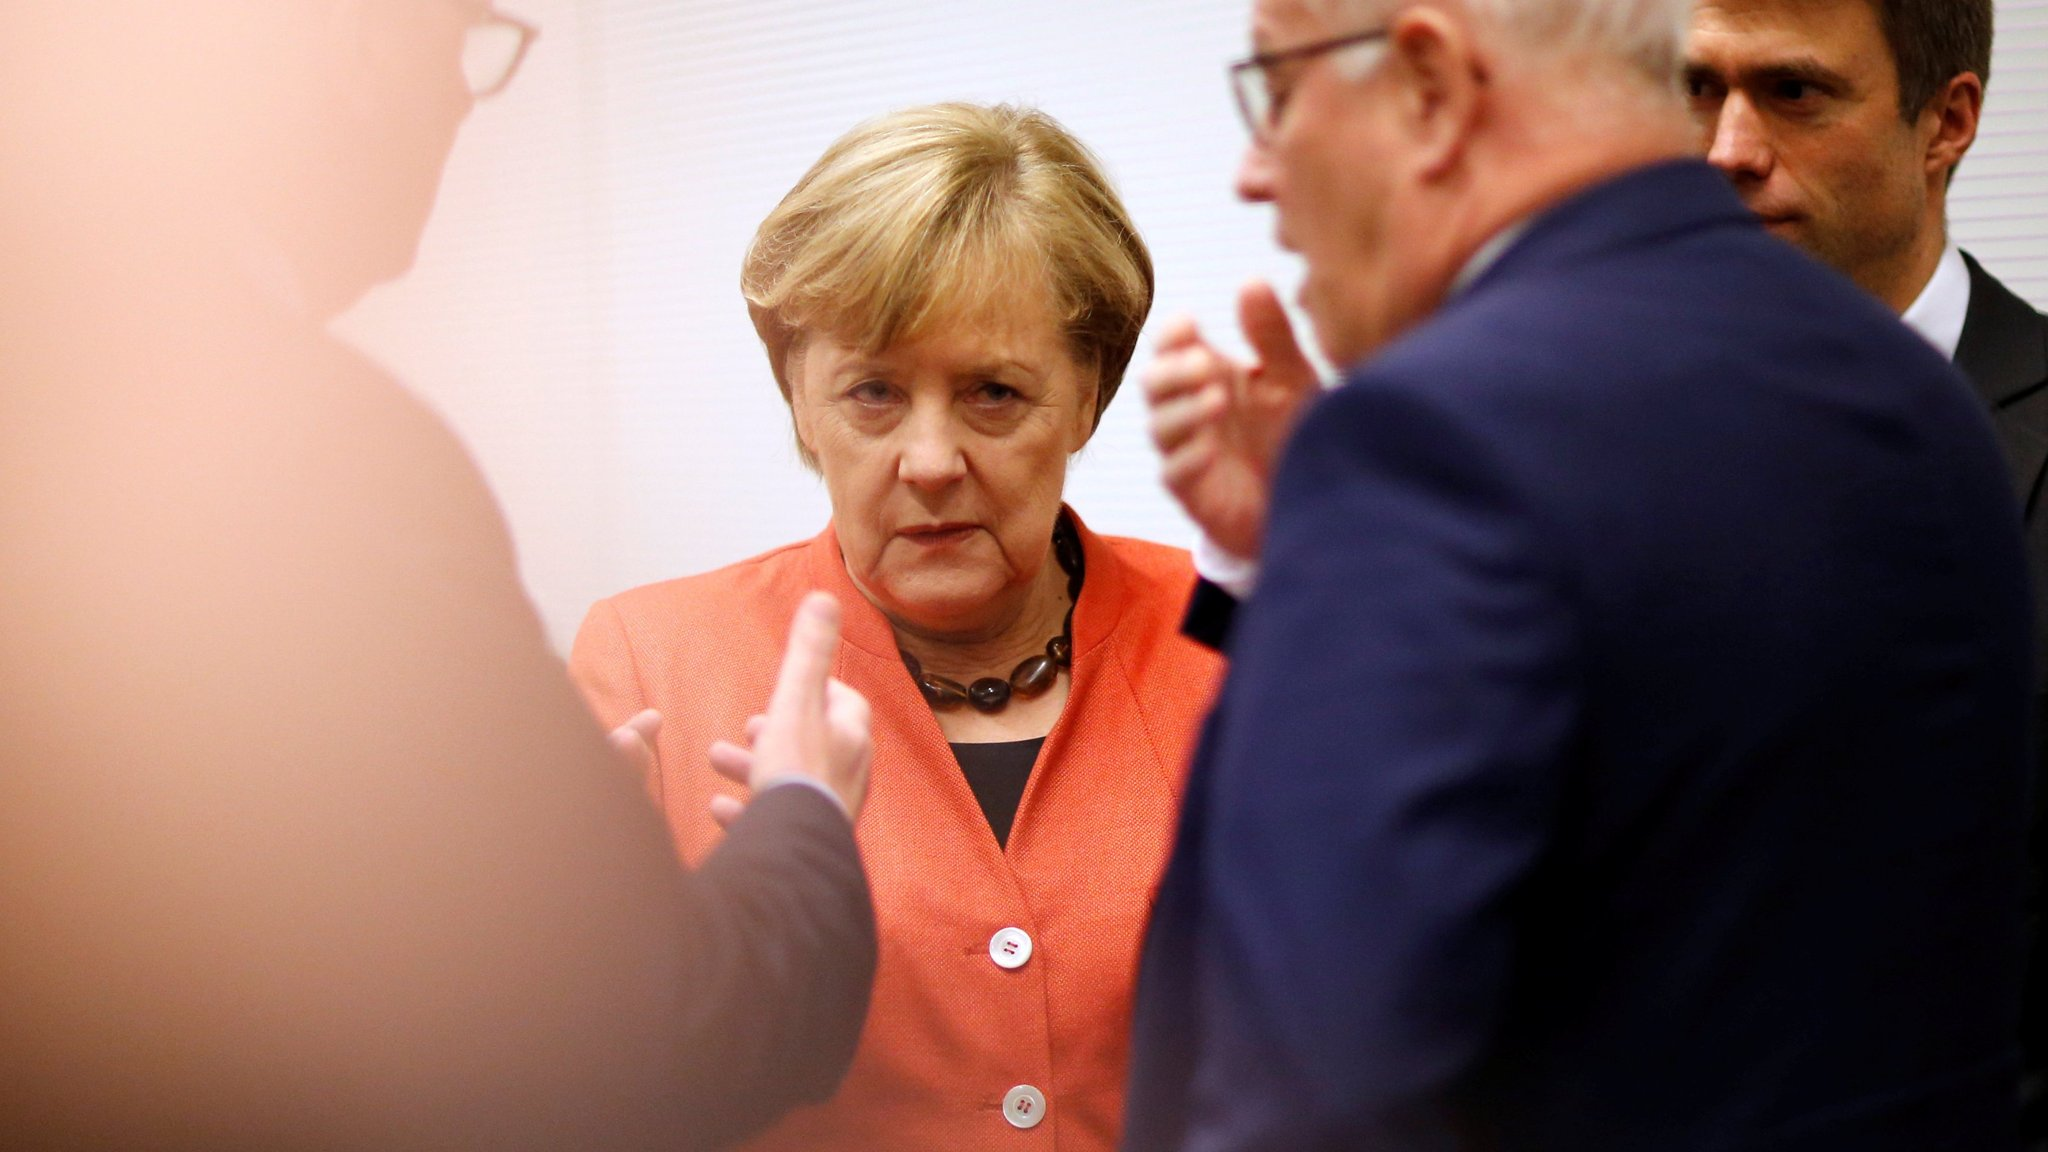 Merkel left searching for route out of crisis